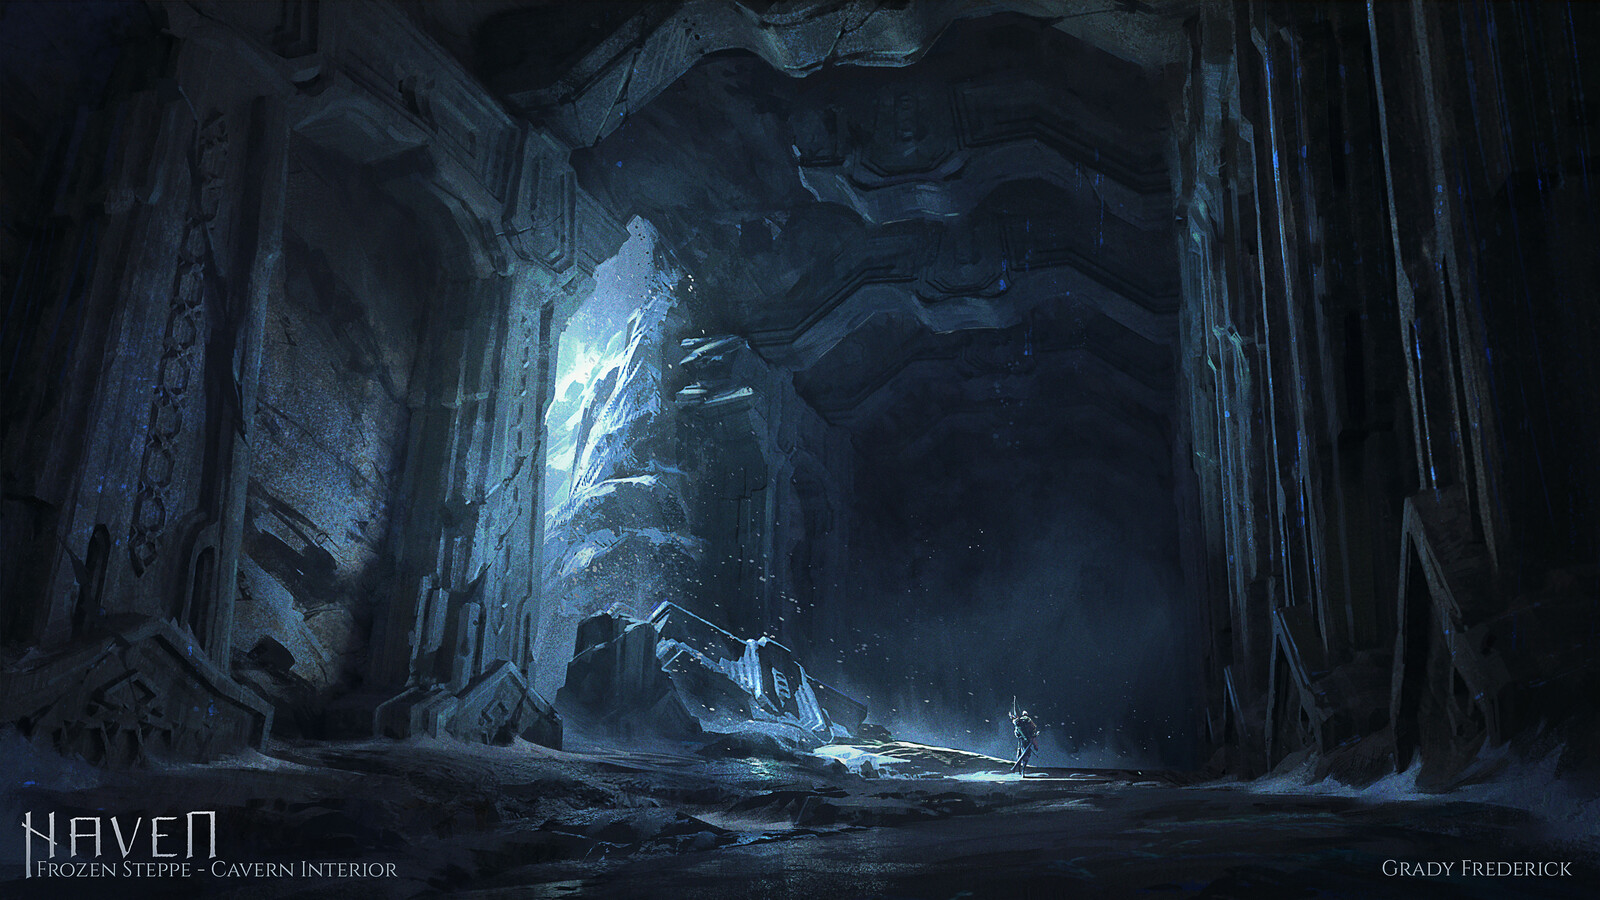 Haven - Caverns in The Frozen Steppe: Interior